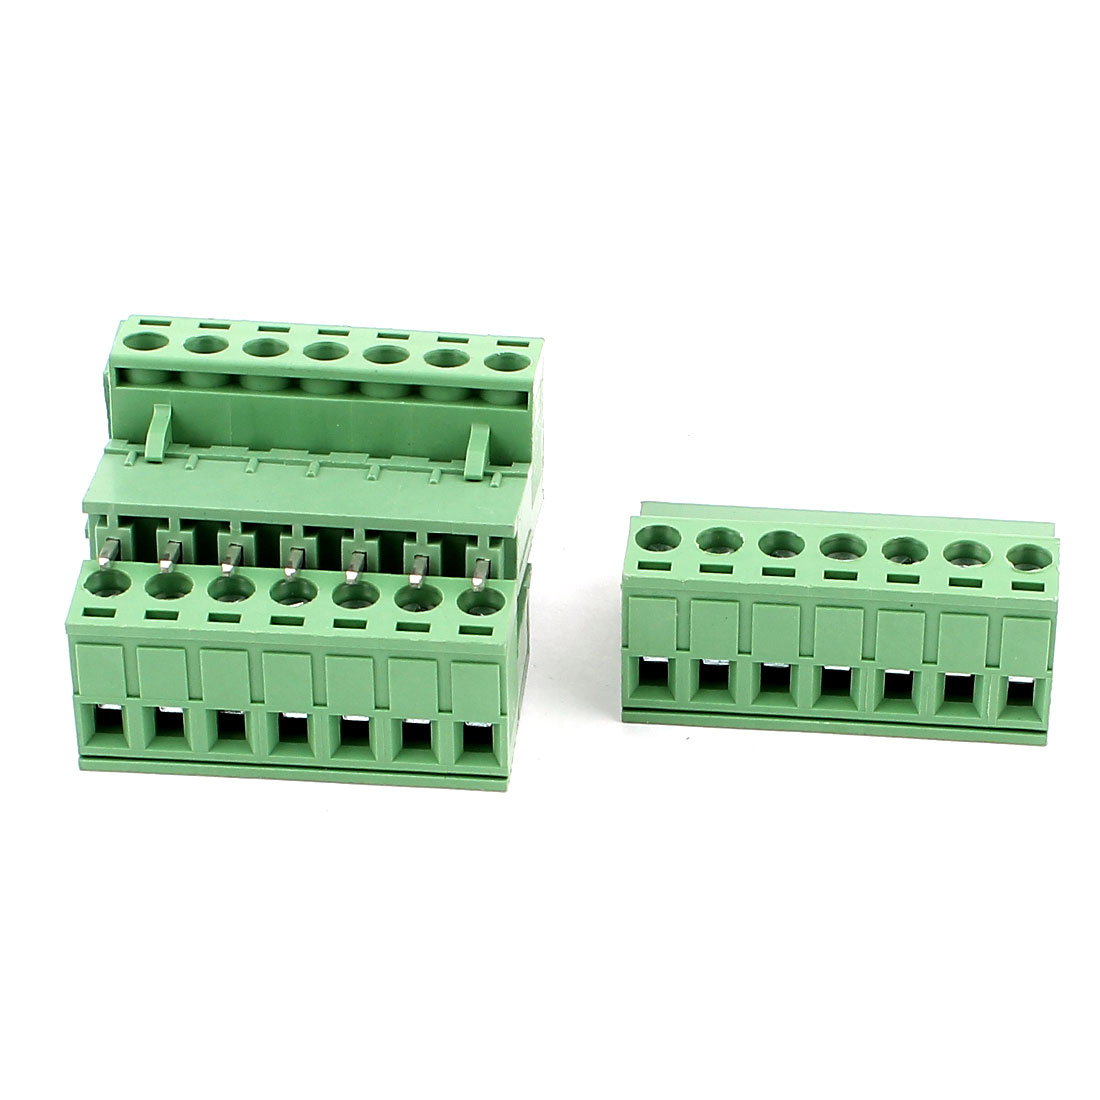 4 Pcs AC 300V 10A 7 Pins PCB Screw Terminal Block Connector 5.08mm Pitch Green